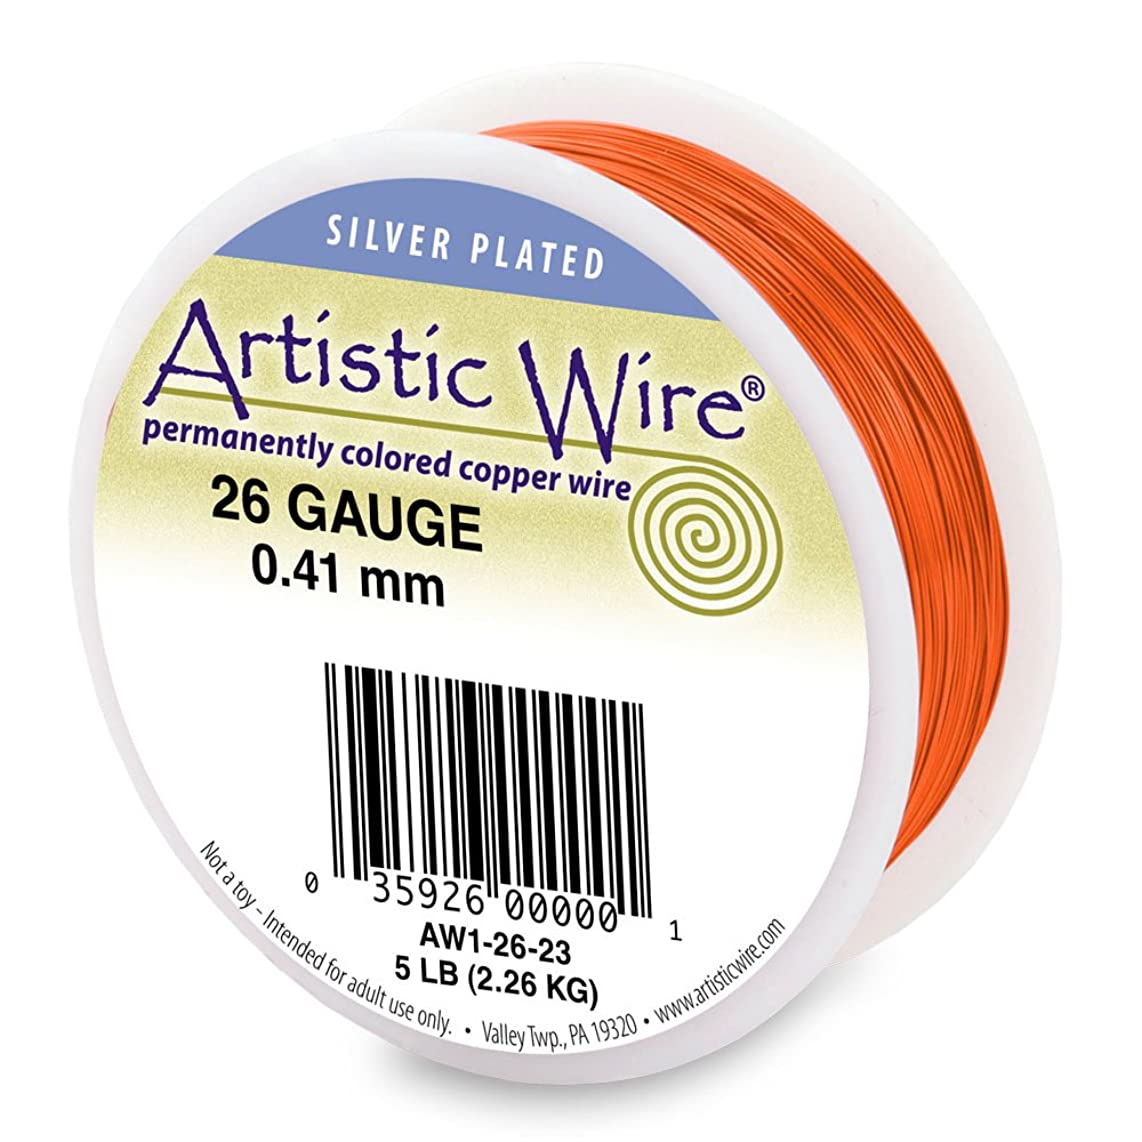 Artistic Wire 28-Gauge Silver Plated Tangerine Wire, 1/4-Pound